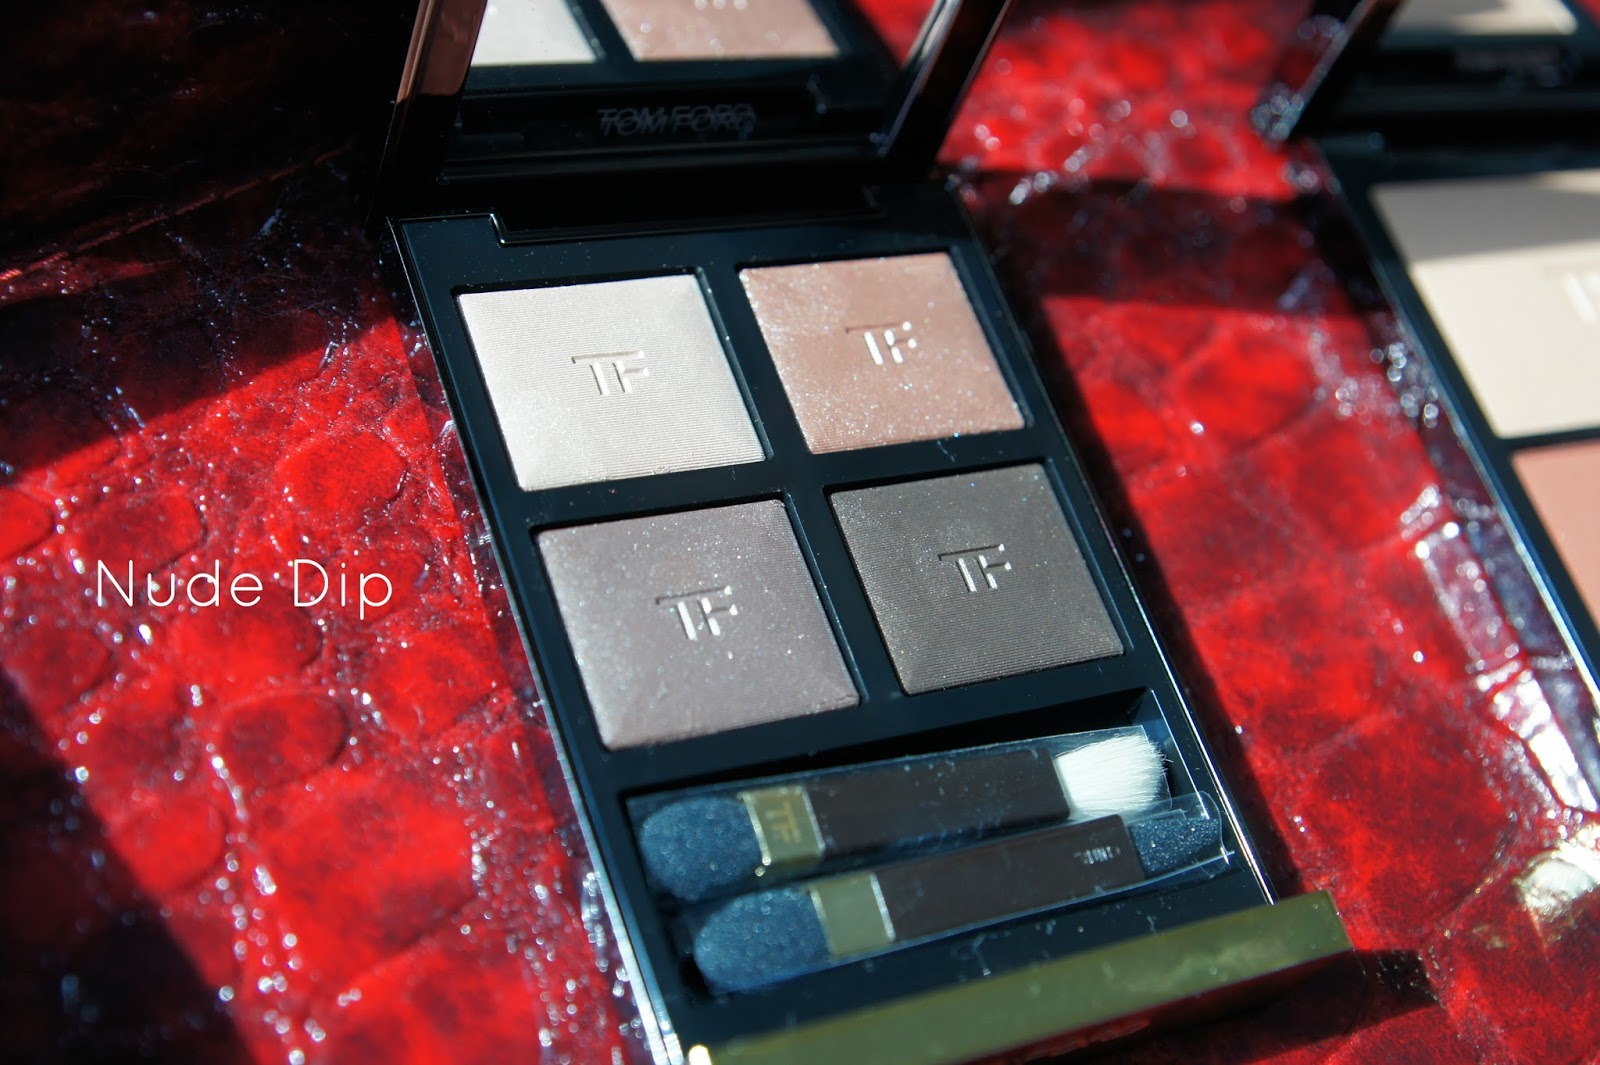 Tom Ford Fall 2014 Nude Dip